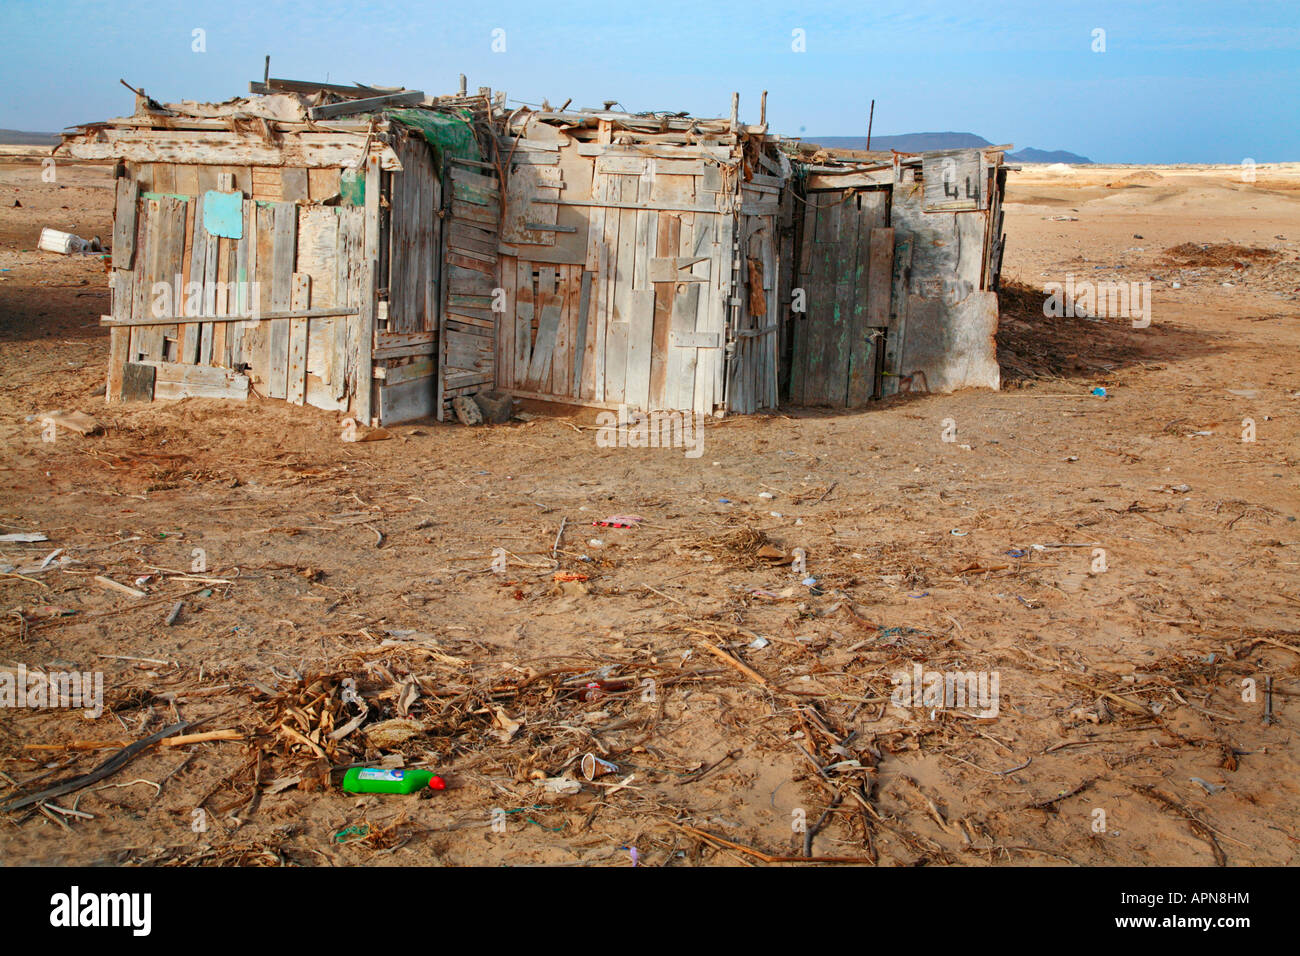 Wooden shacks in the slums behind Sal tourist resort in the Cape Verde islands - Stock Image